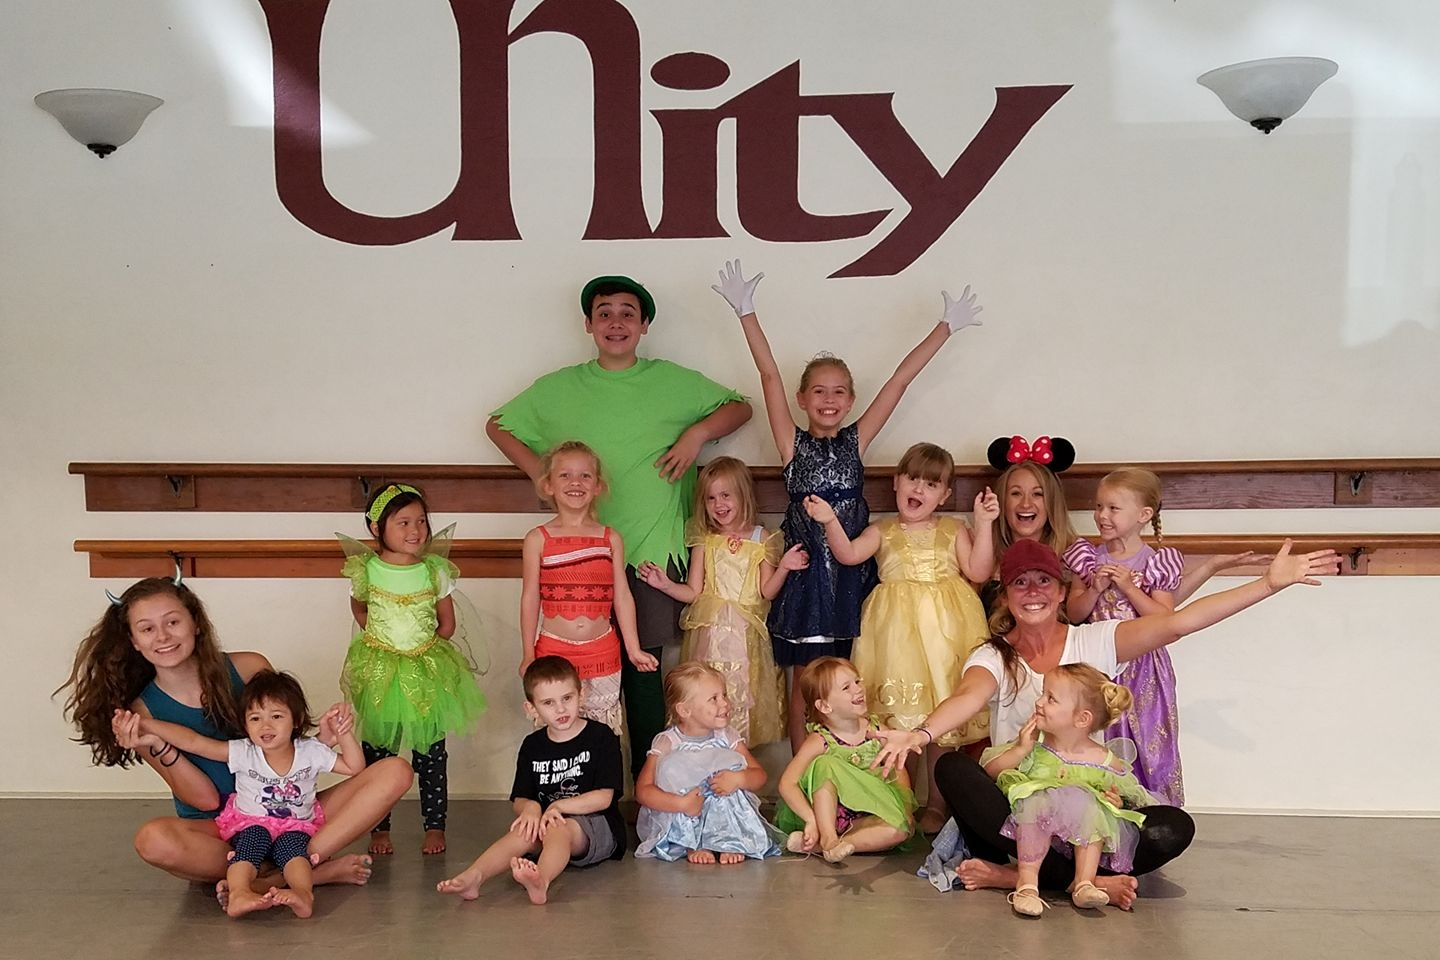 Disney Dance Camp - Two weeks to choose from!Week 1 - ages 2-5Week 2 - ages 4-8